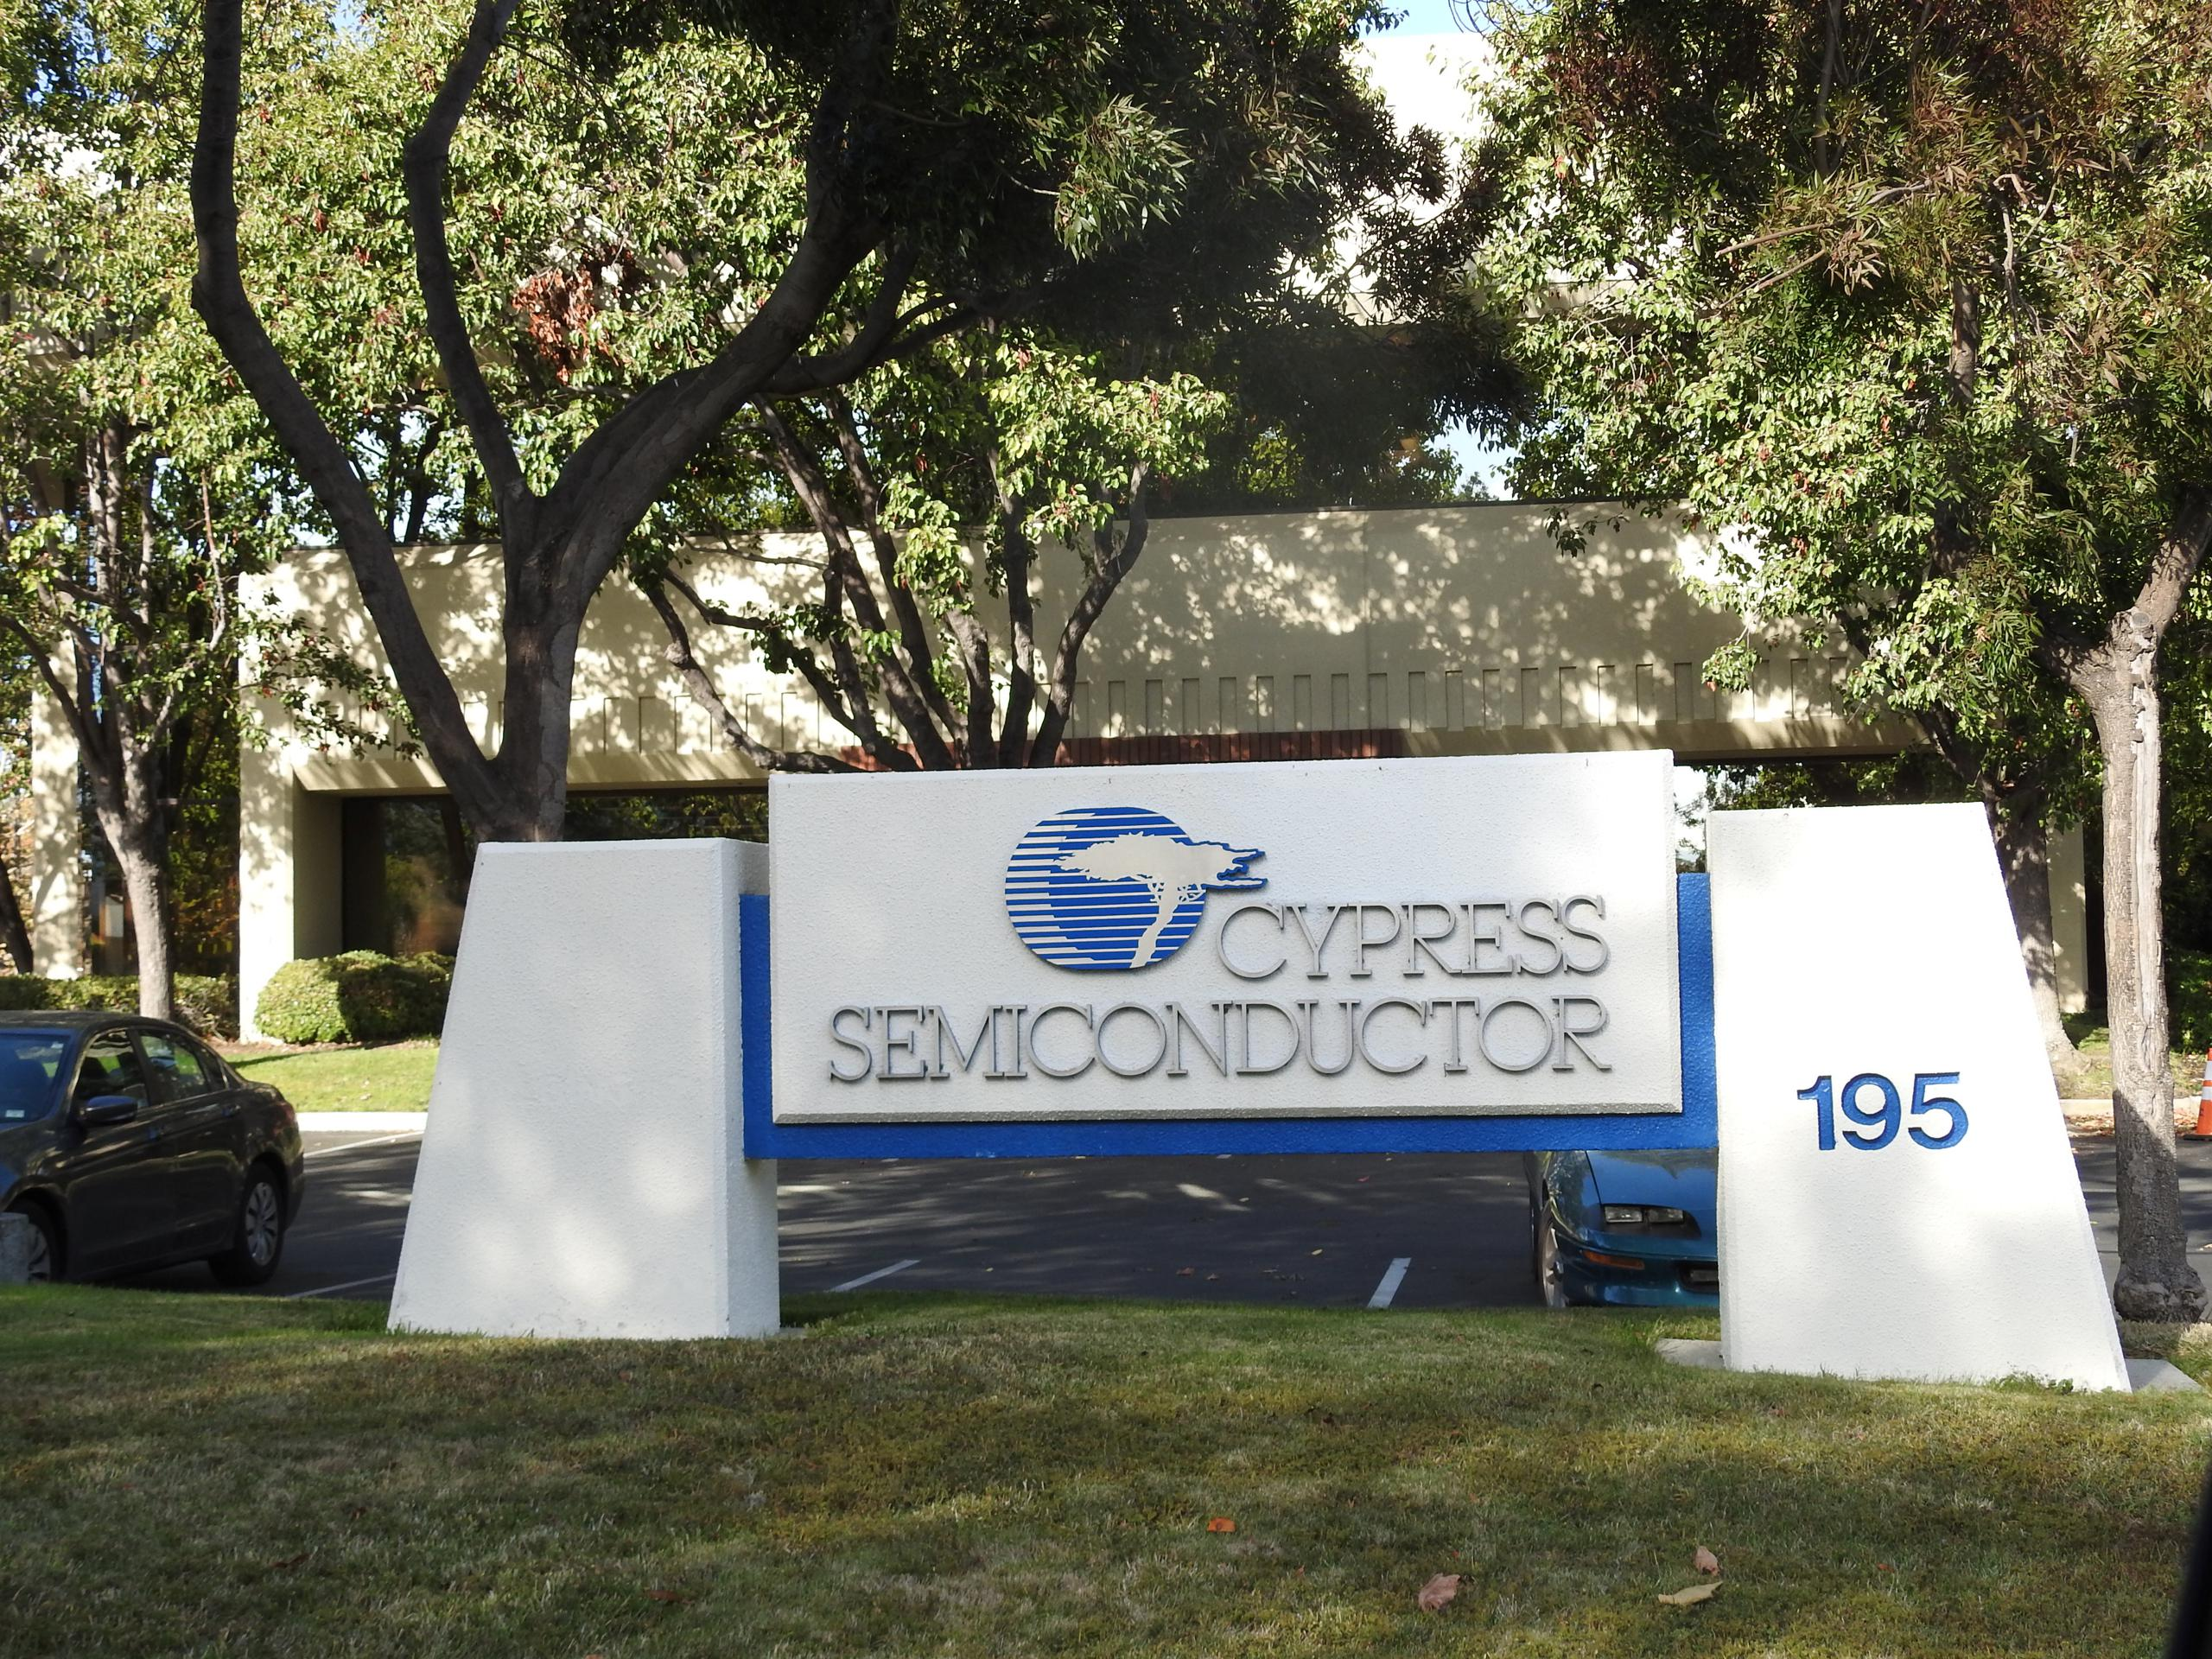 Entrance to Cypress Semiconductor's corporate headquarters in San Jose, California.